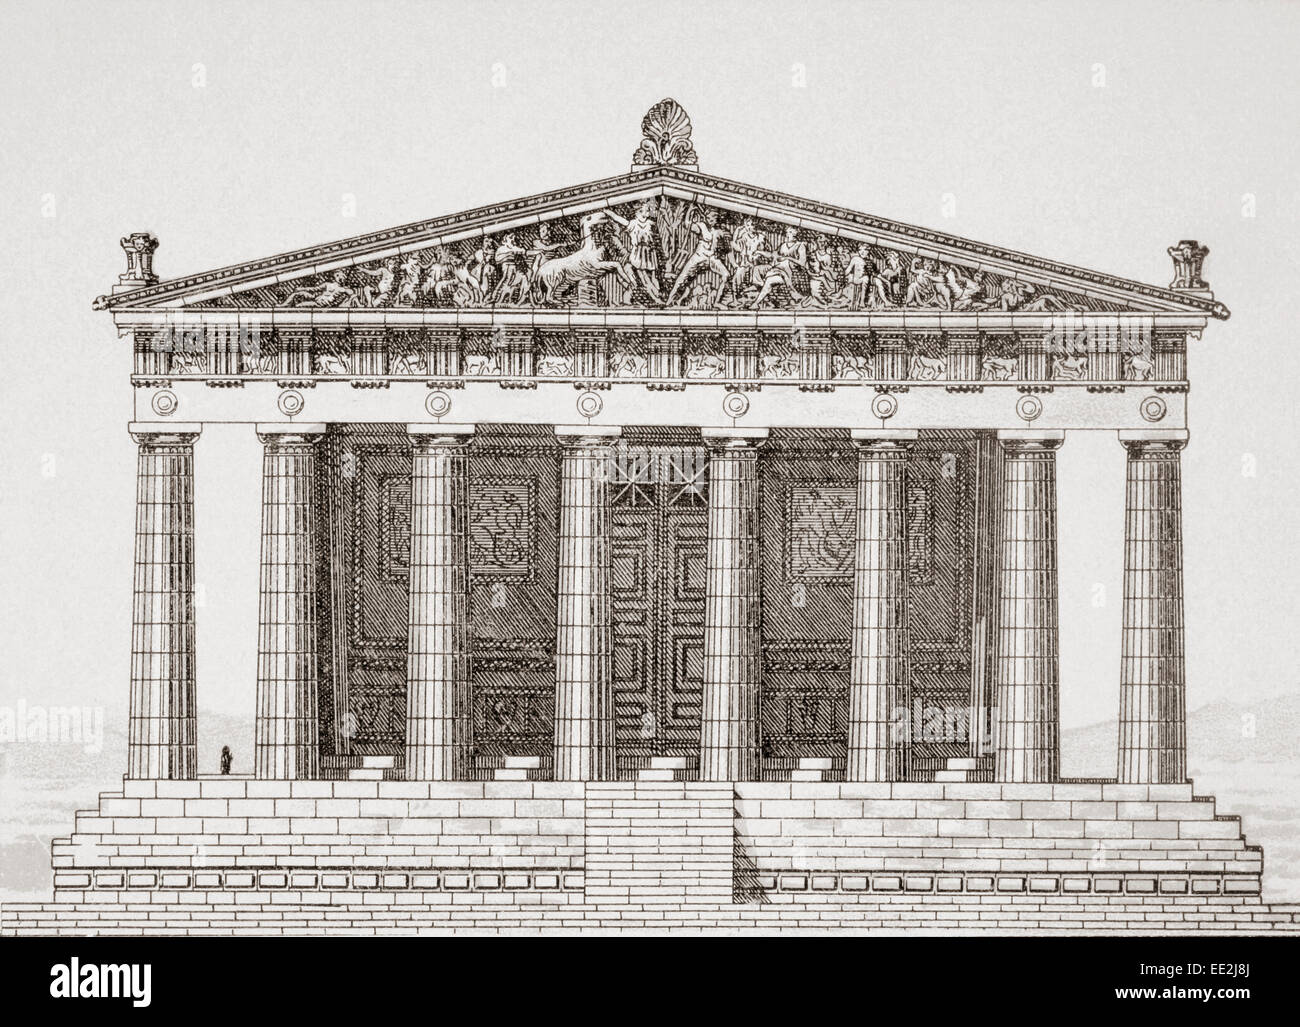 Reconstruction drawing of the Parthenon temple in